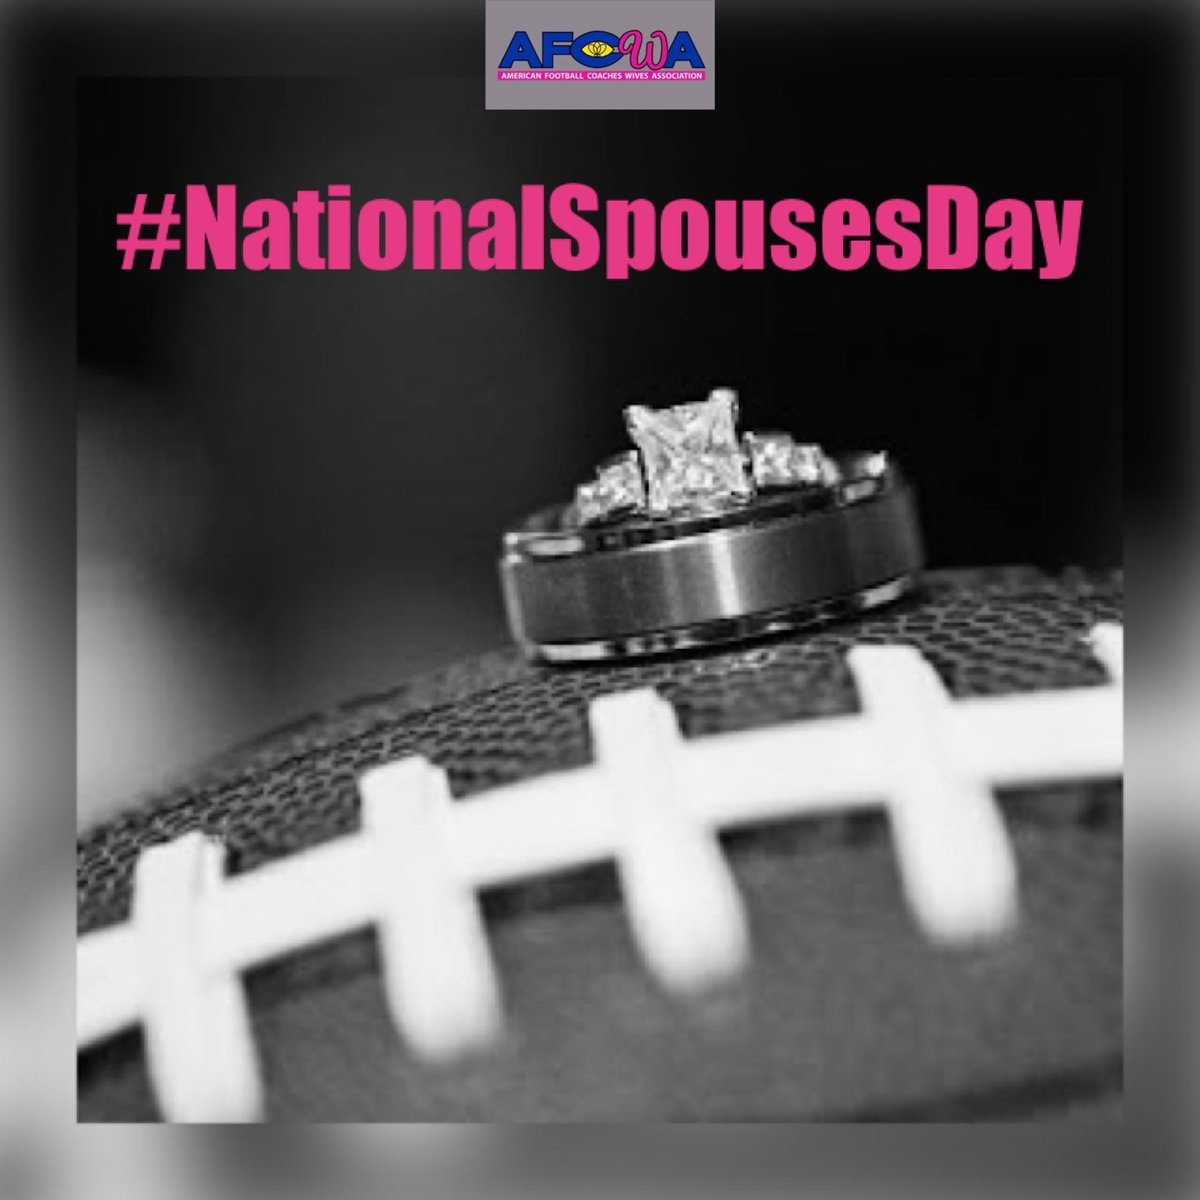 Since it's #NationalSpousesDay. . . . show us a favorite picture of you and your coach in the comments👇🏼(old or new)! Teamwork makes the dream work😉🏈💍❤️! #SpouseDay #footballwives #coacheswives #teamwork